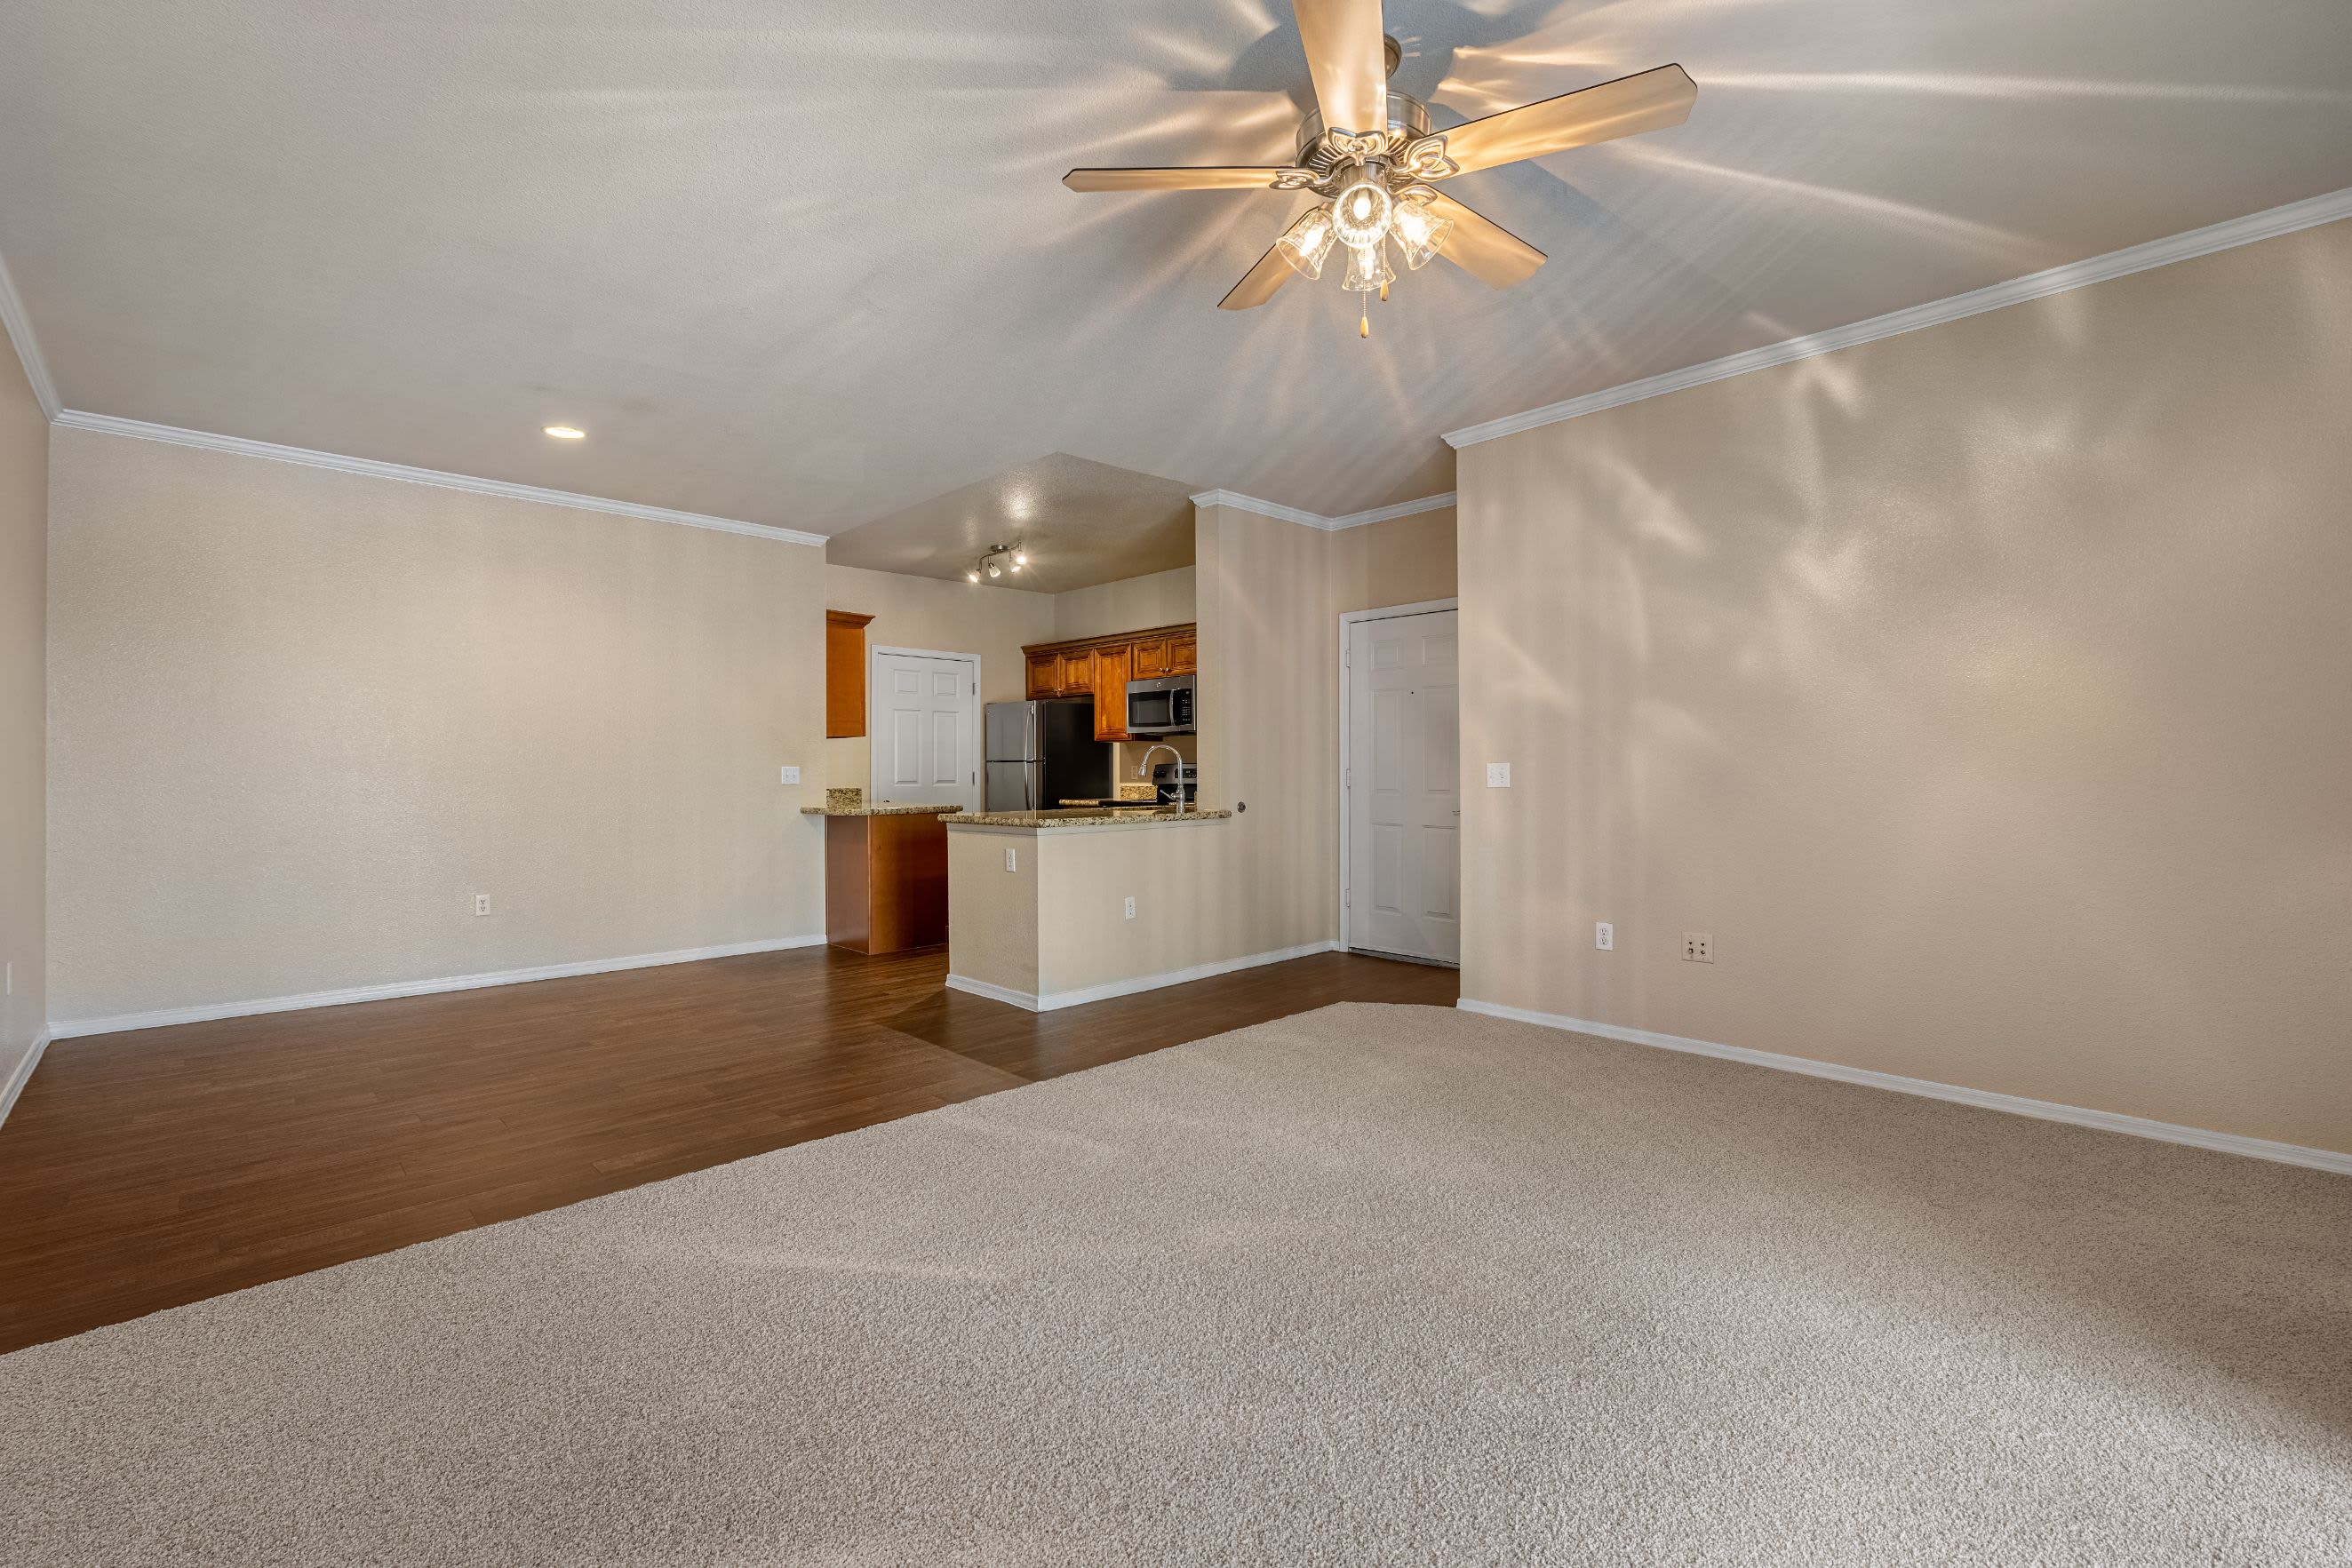 Living room with carpet and a ceiling fan Azure Creek in Cave Creek, Arizona